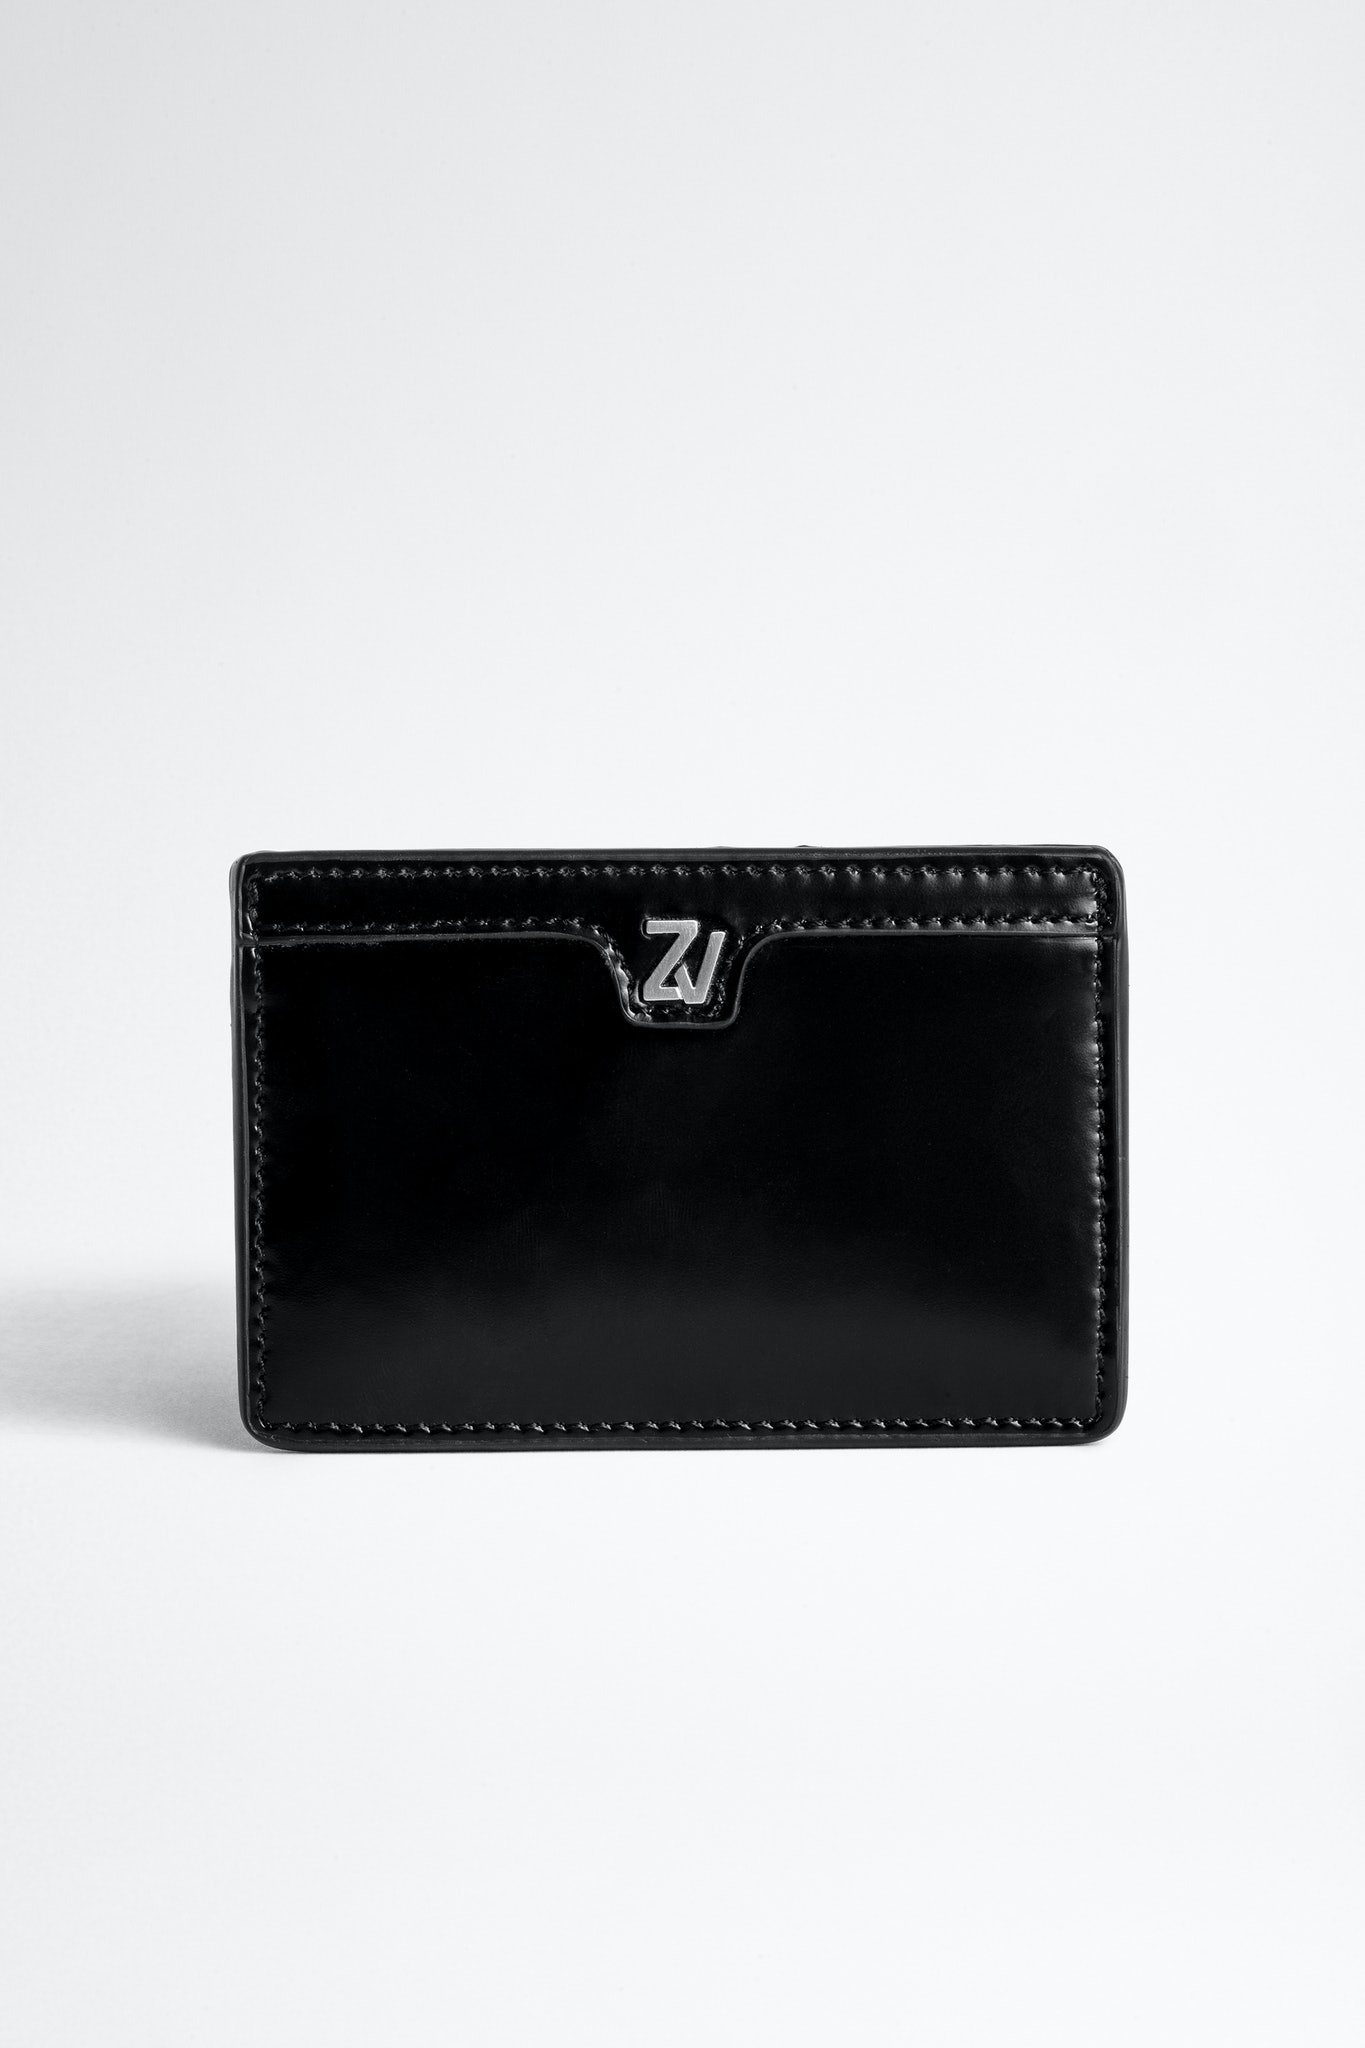 ZV Initiale Nyro Card Holder